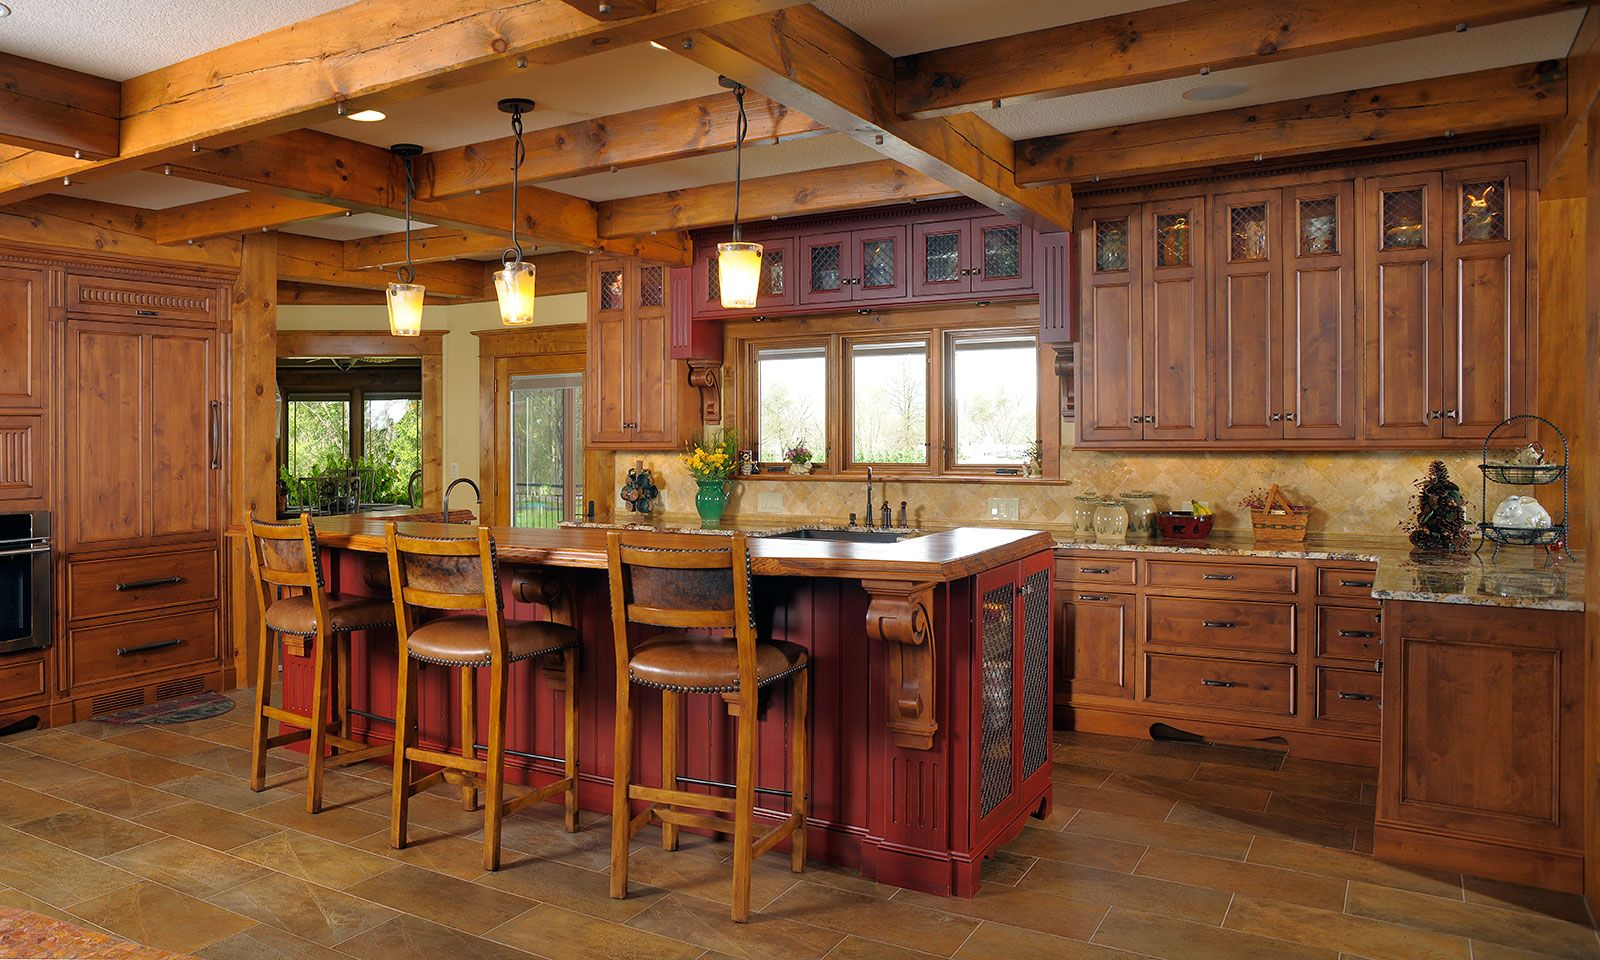 Perfect Mullet Cabinet   Rustic Kitchen Retreat Showcasing Knotty Alder Cabinetry.